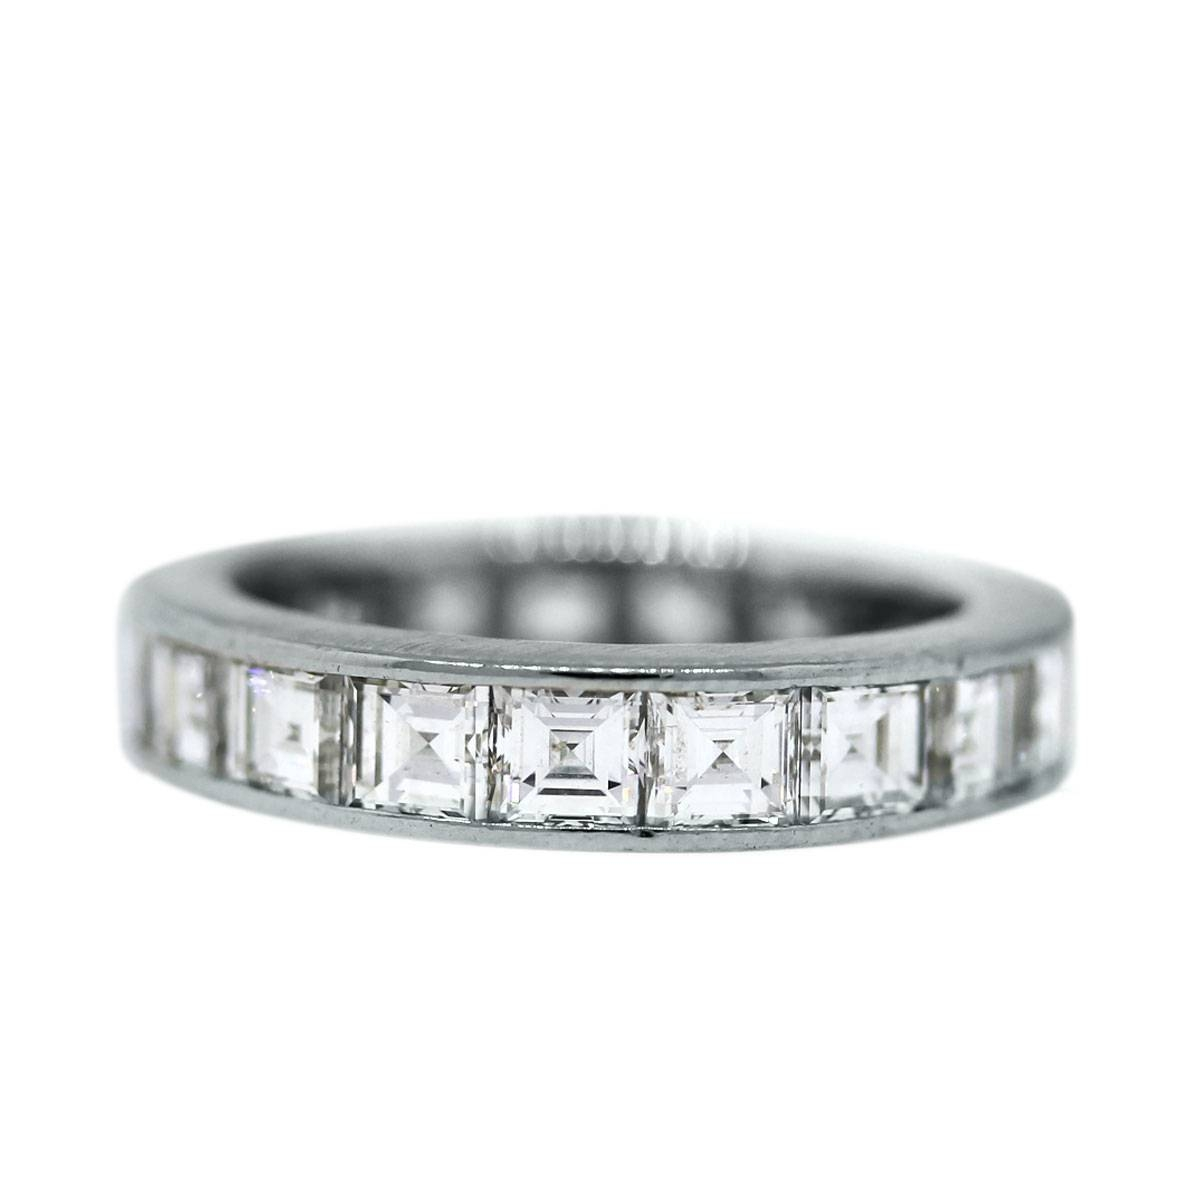 Platinum 3.5 Ctw Asscher Cut Diamond Eternity Band Ring Boca Raton In Current Asscher Cut Wedding Bands (Gallery 4 of 15)